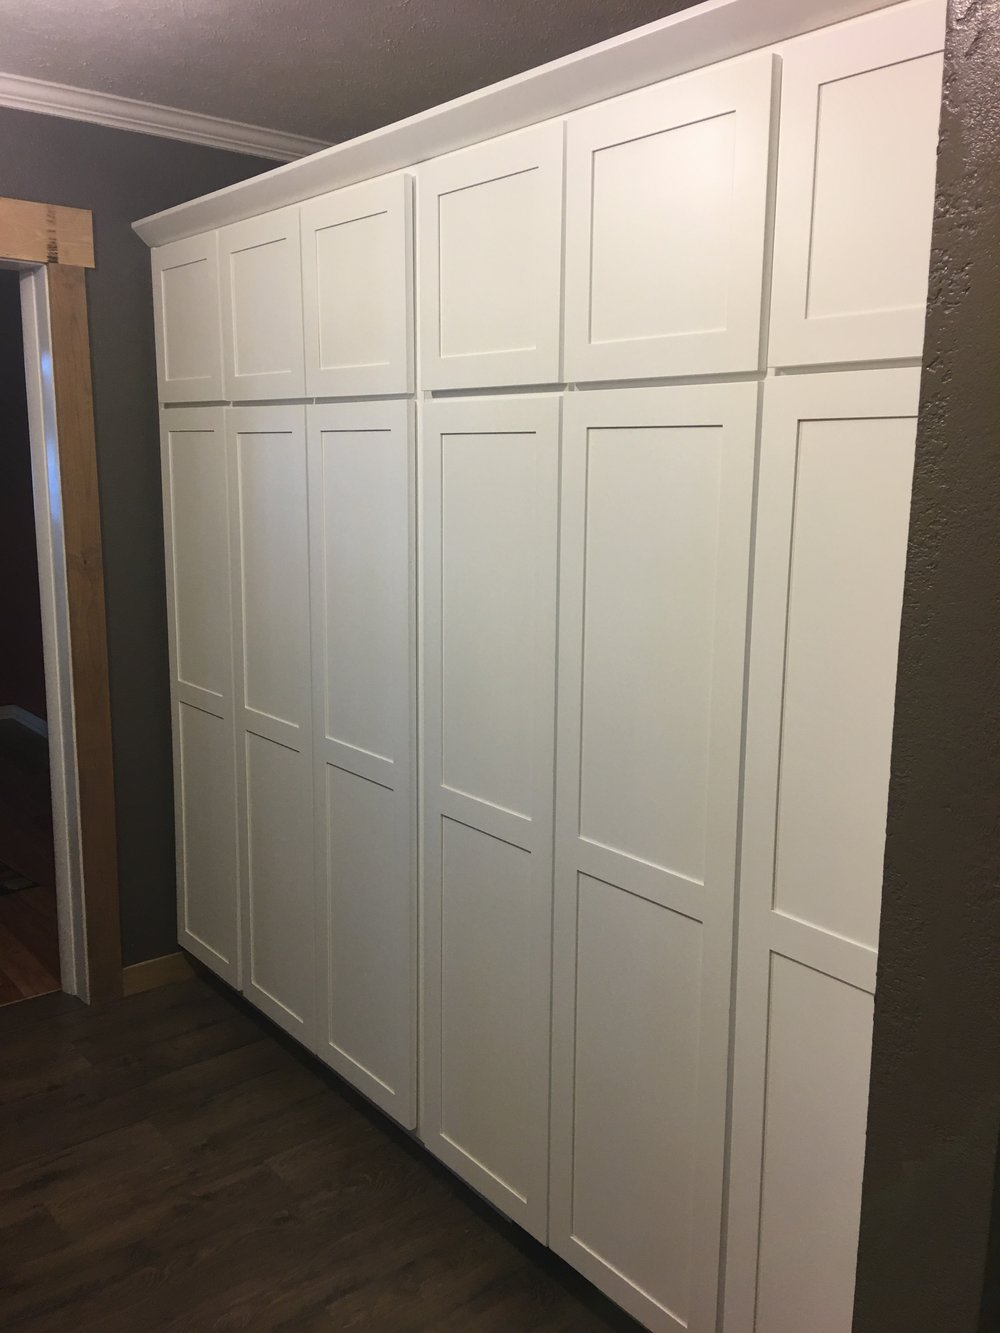 Amish custom made cabinets in a pantry